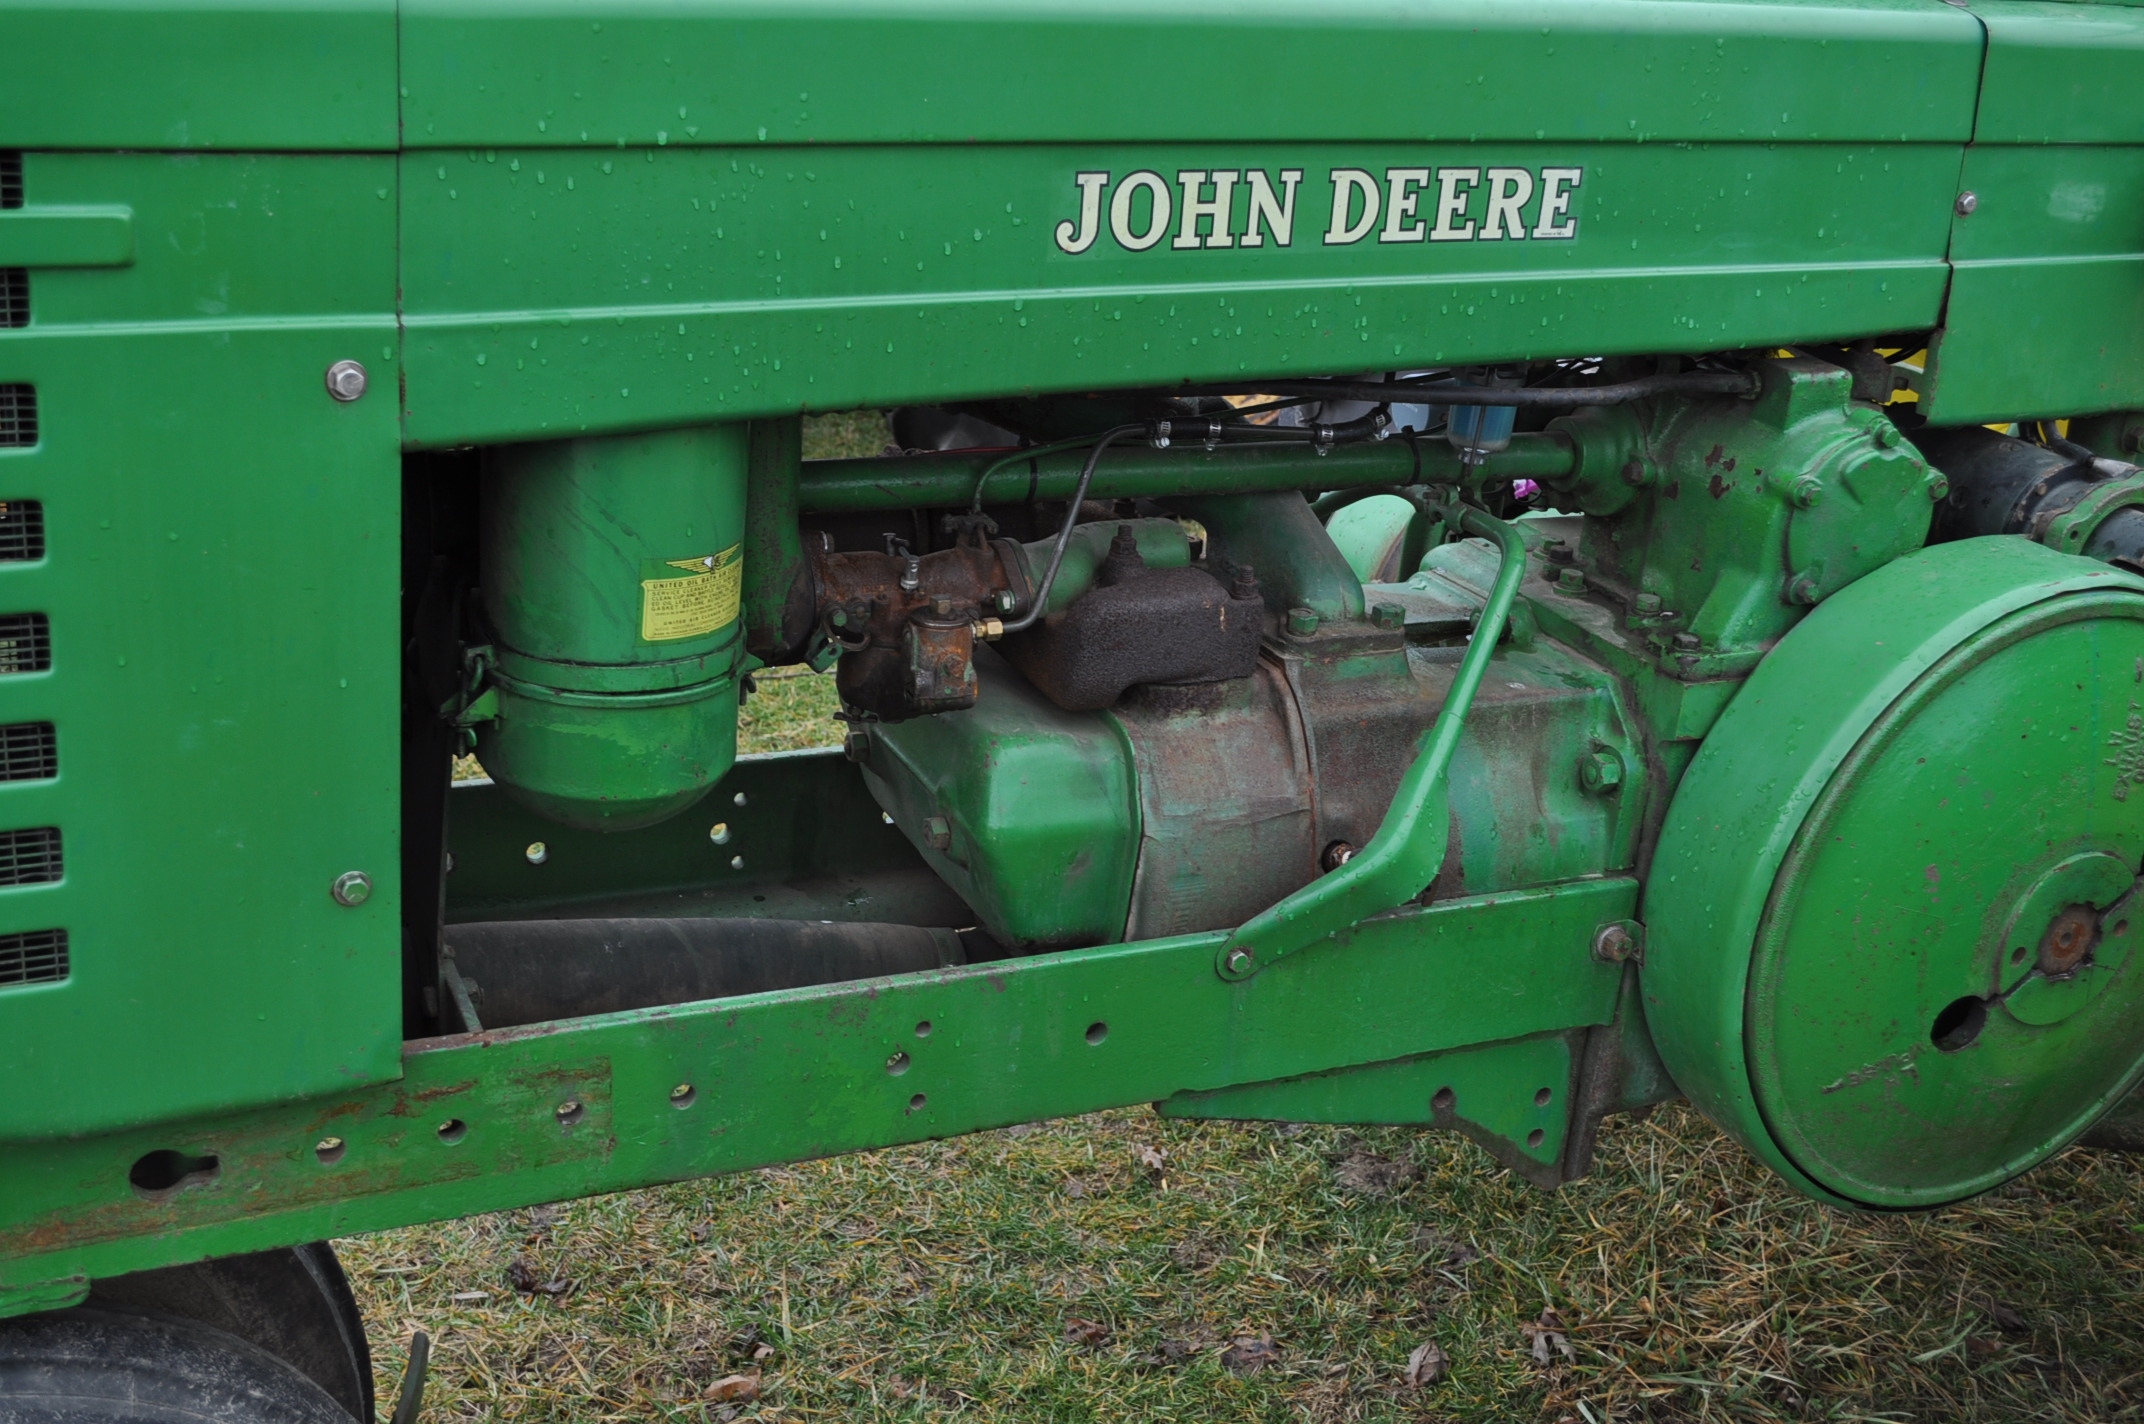 1942 John Deere Styled A, New 12.4-38 rear tires, narrow front, 540 pto - Image 10 of 15